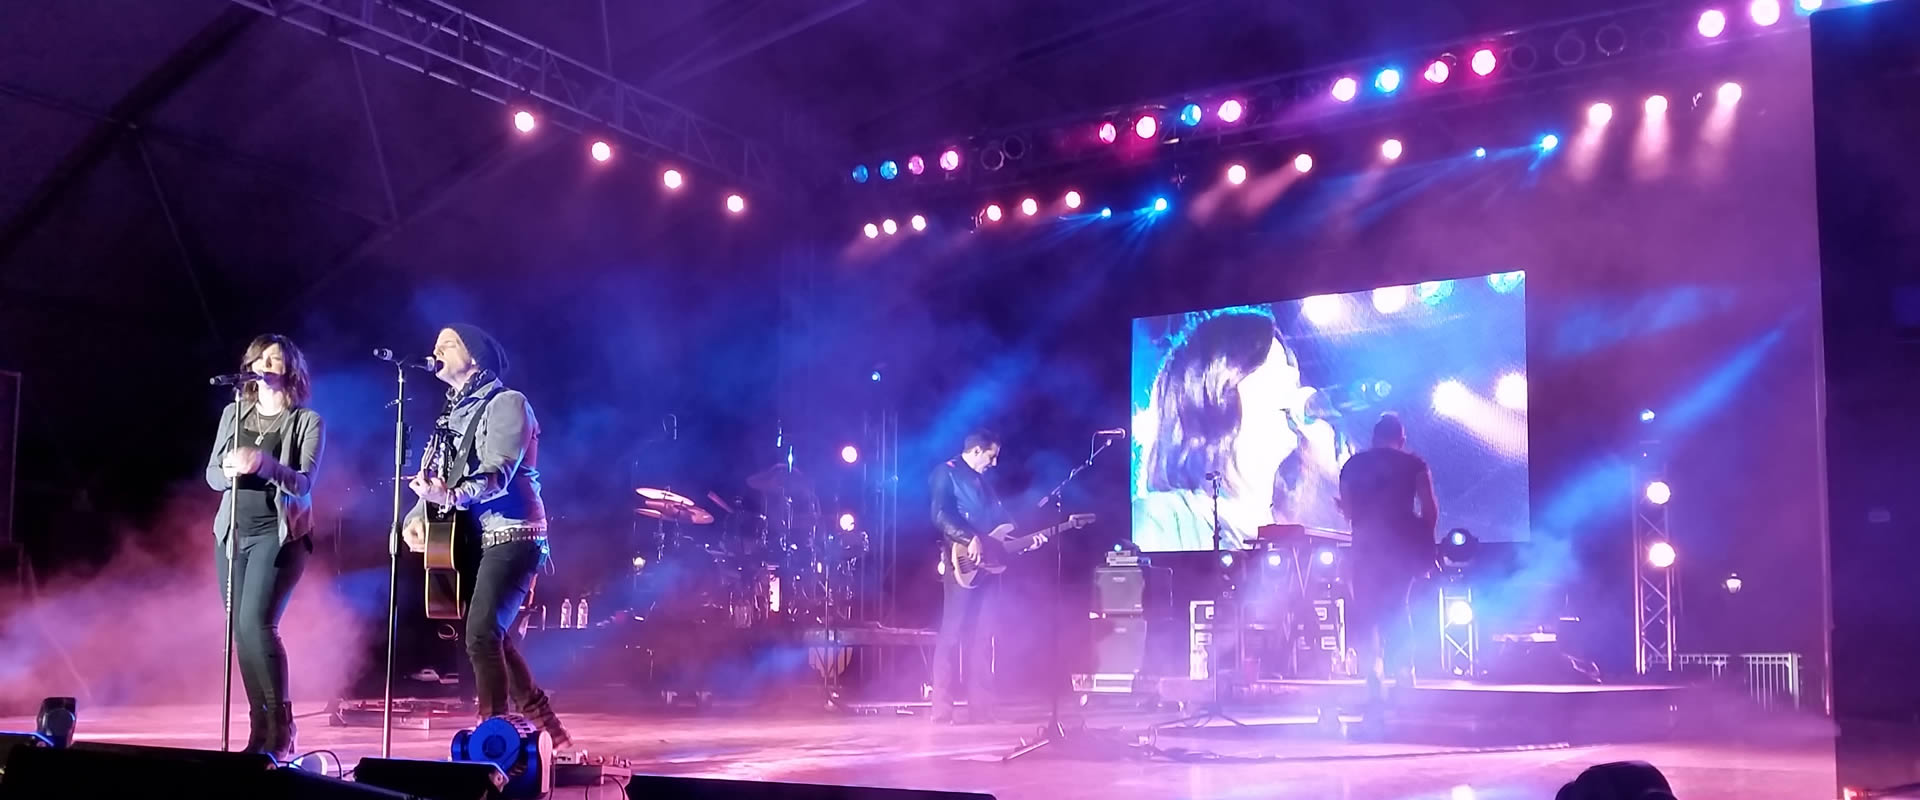 Music Festivals Lighting and Staging